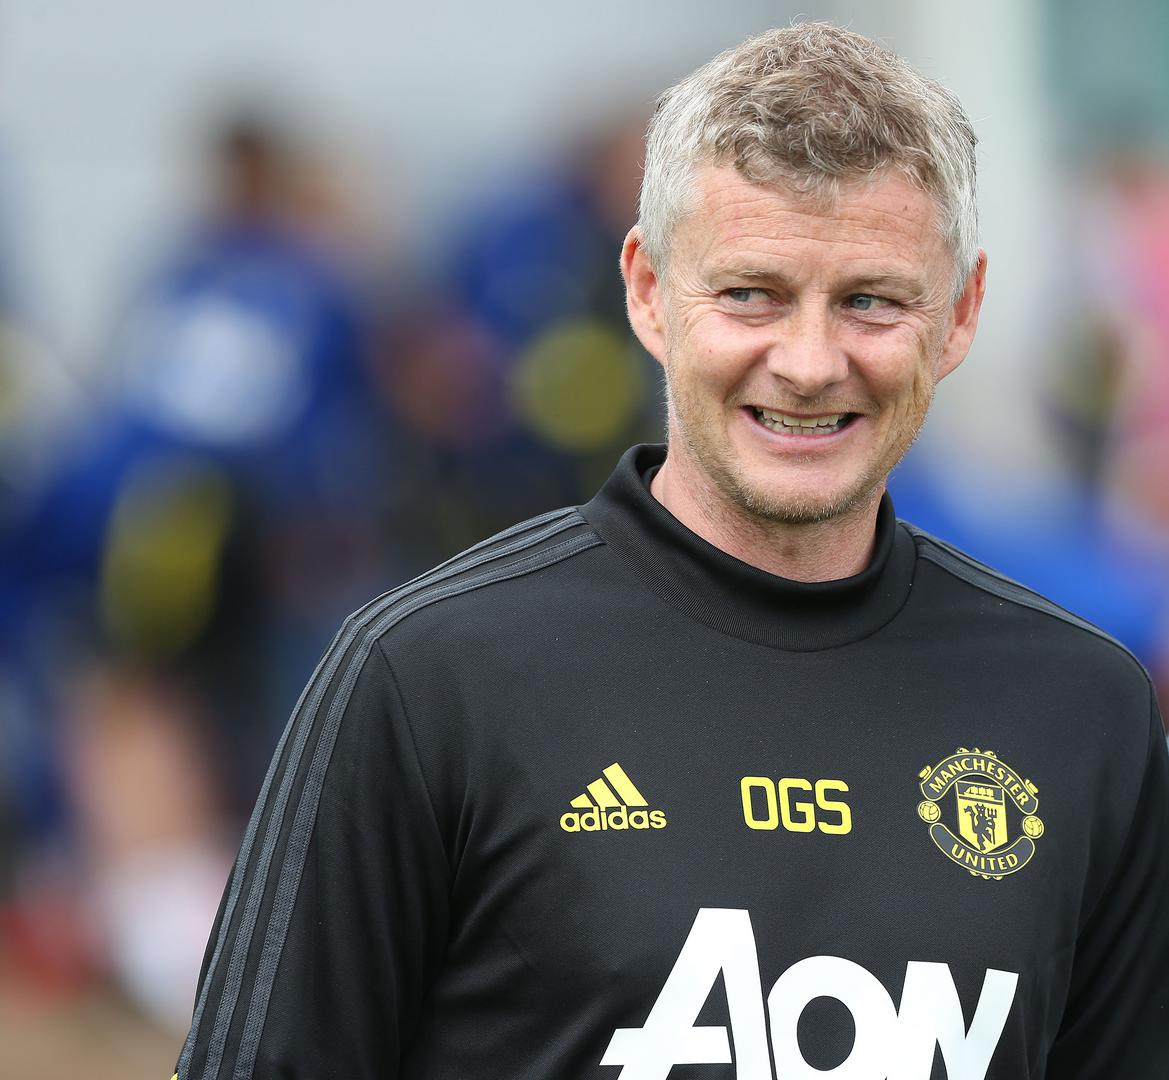 Ole Gunnar Solskjaer smiling at the Aon Training Complex.